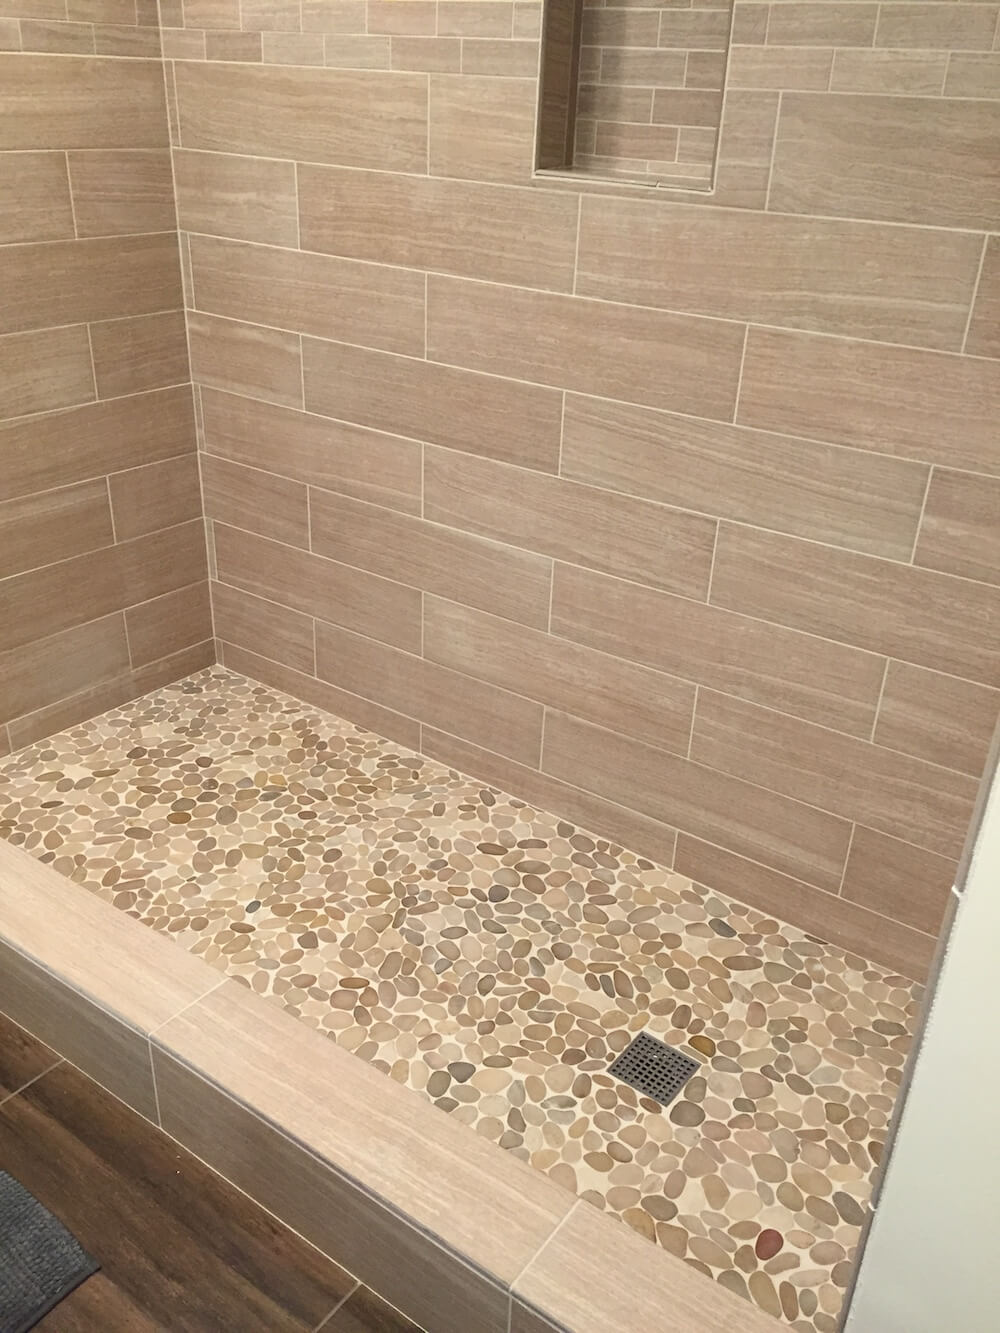 2017 cost to tile a shower how much to tile a shower for Carrelage 32x32